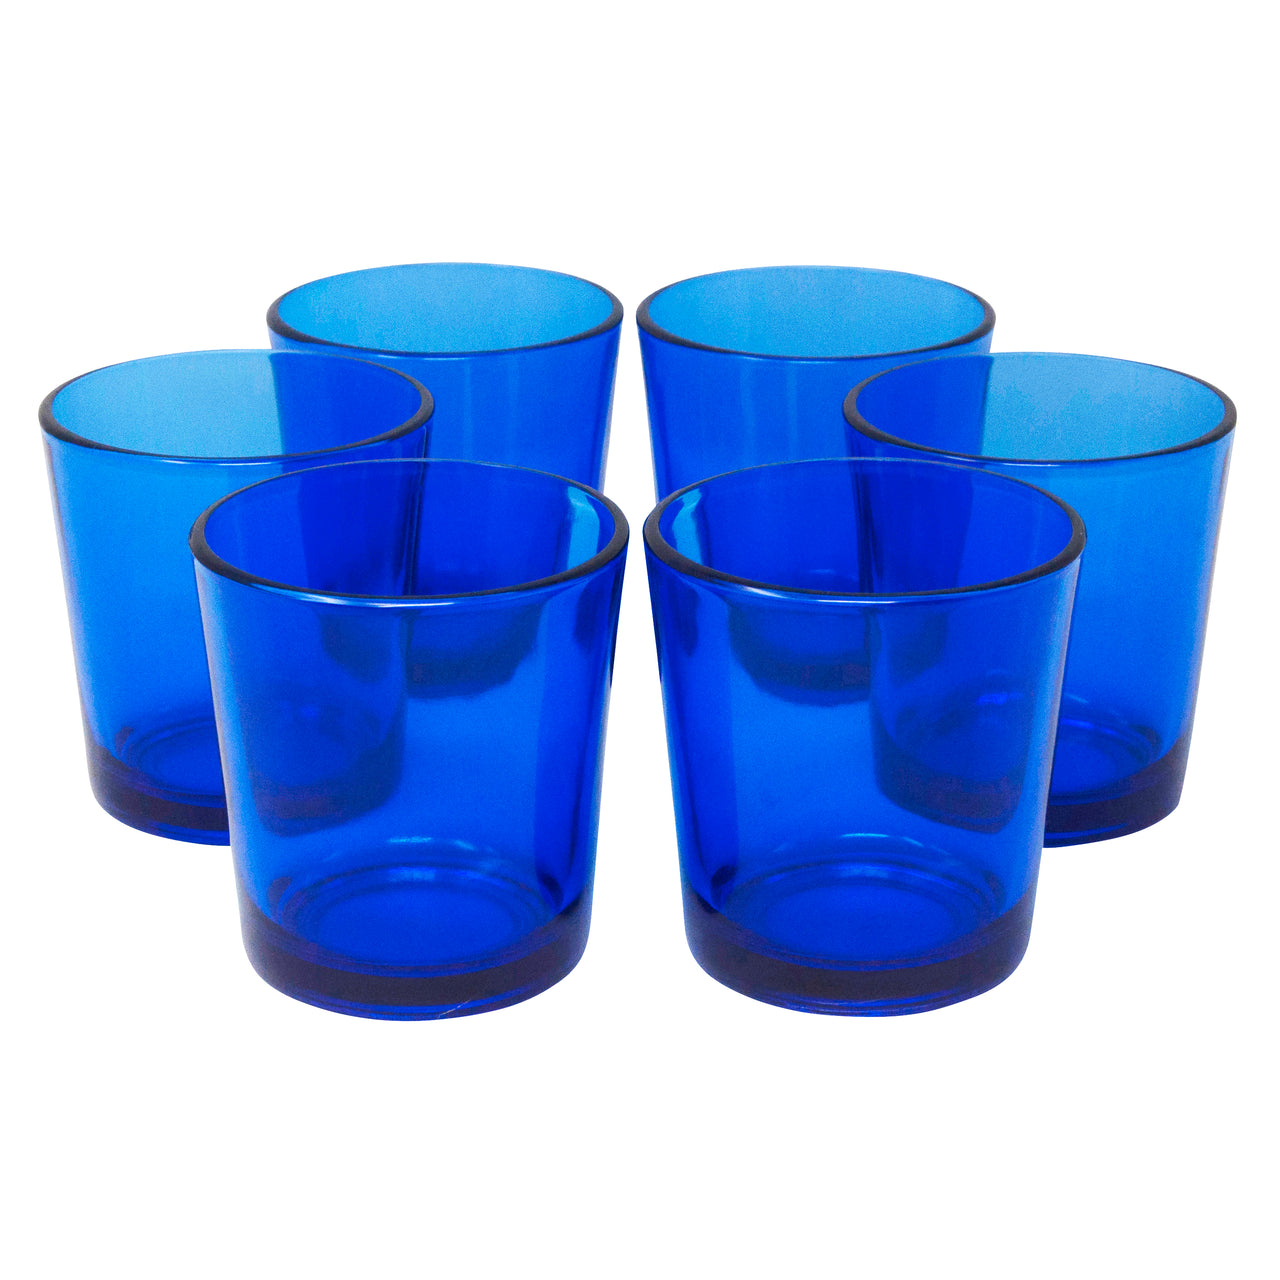 Vintage Libbey Cobalt Blue Rocks Glasses | The Hour Shop